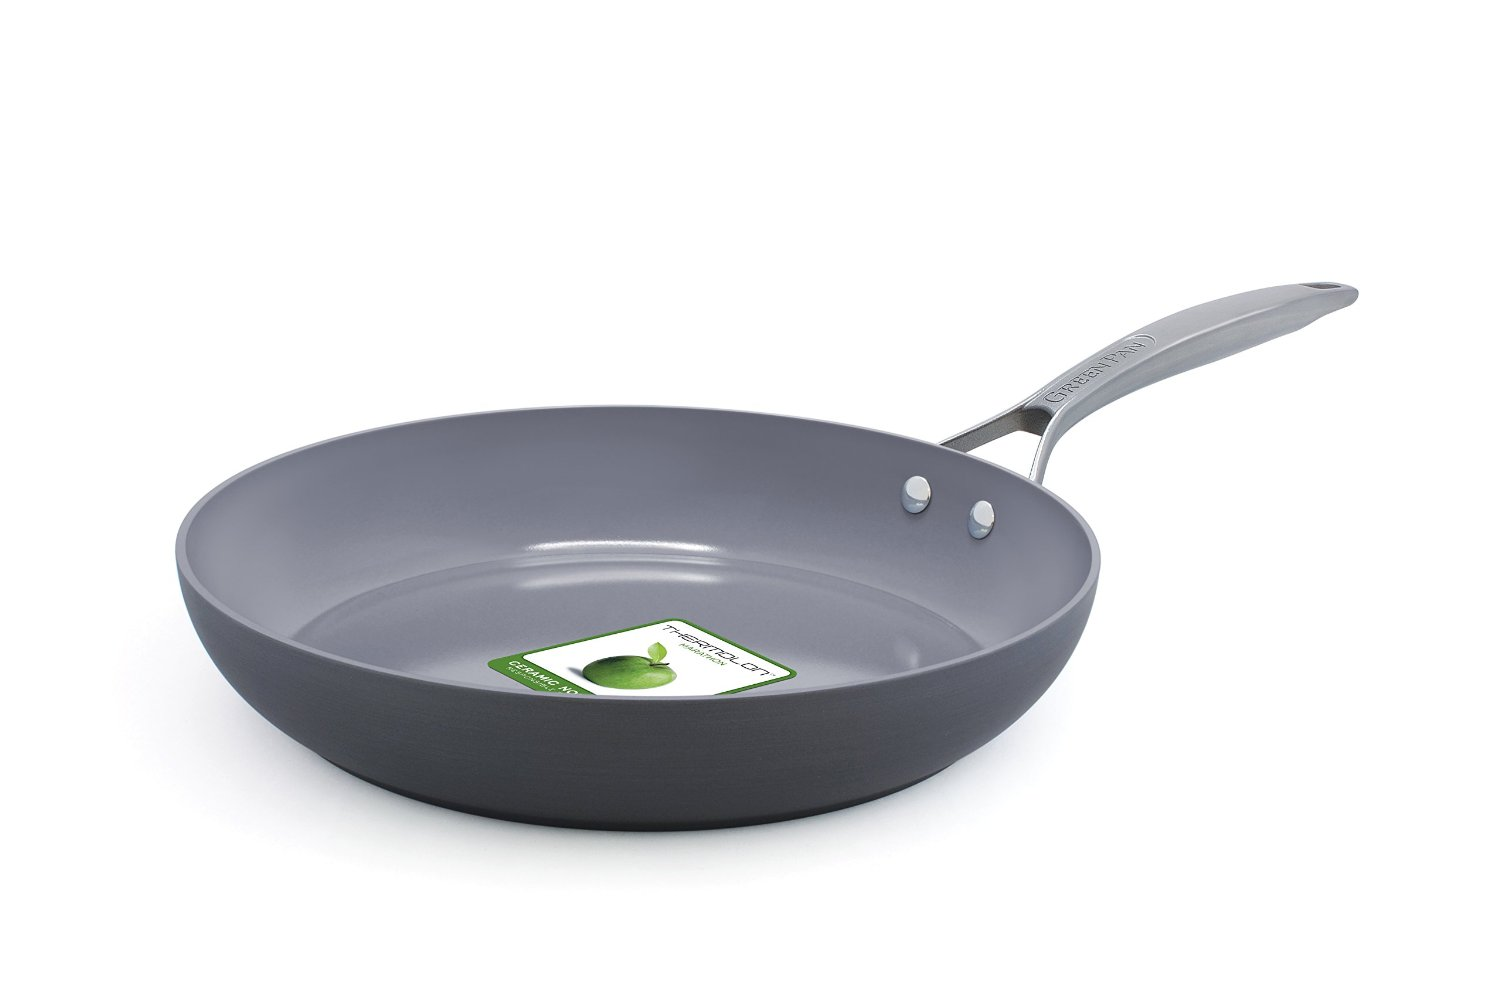 The Cookware Company Non-Stick Ceramic Fry Pan